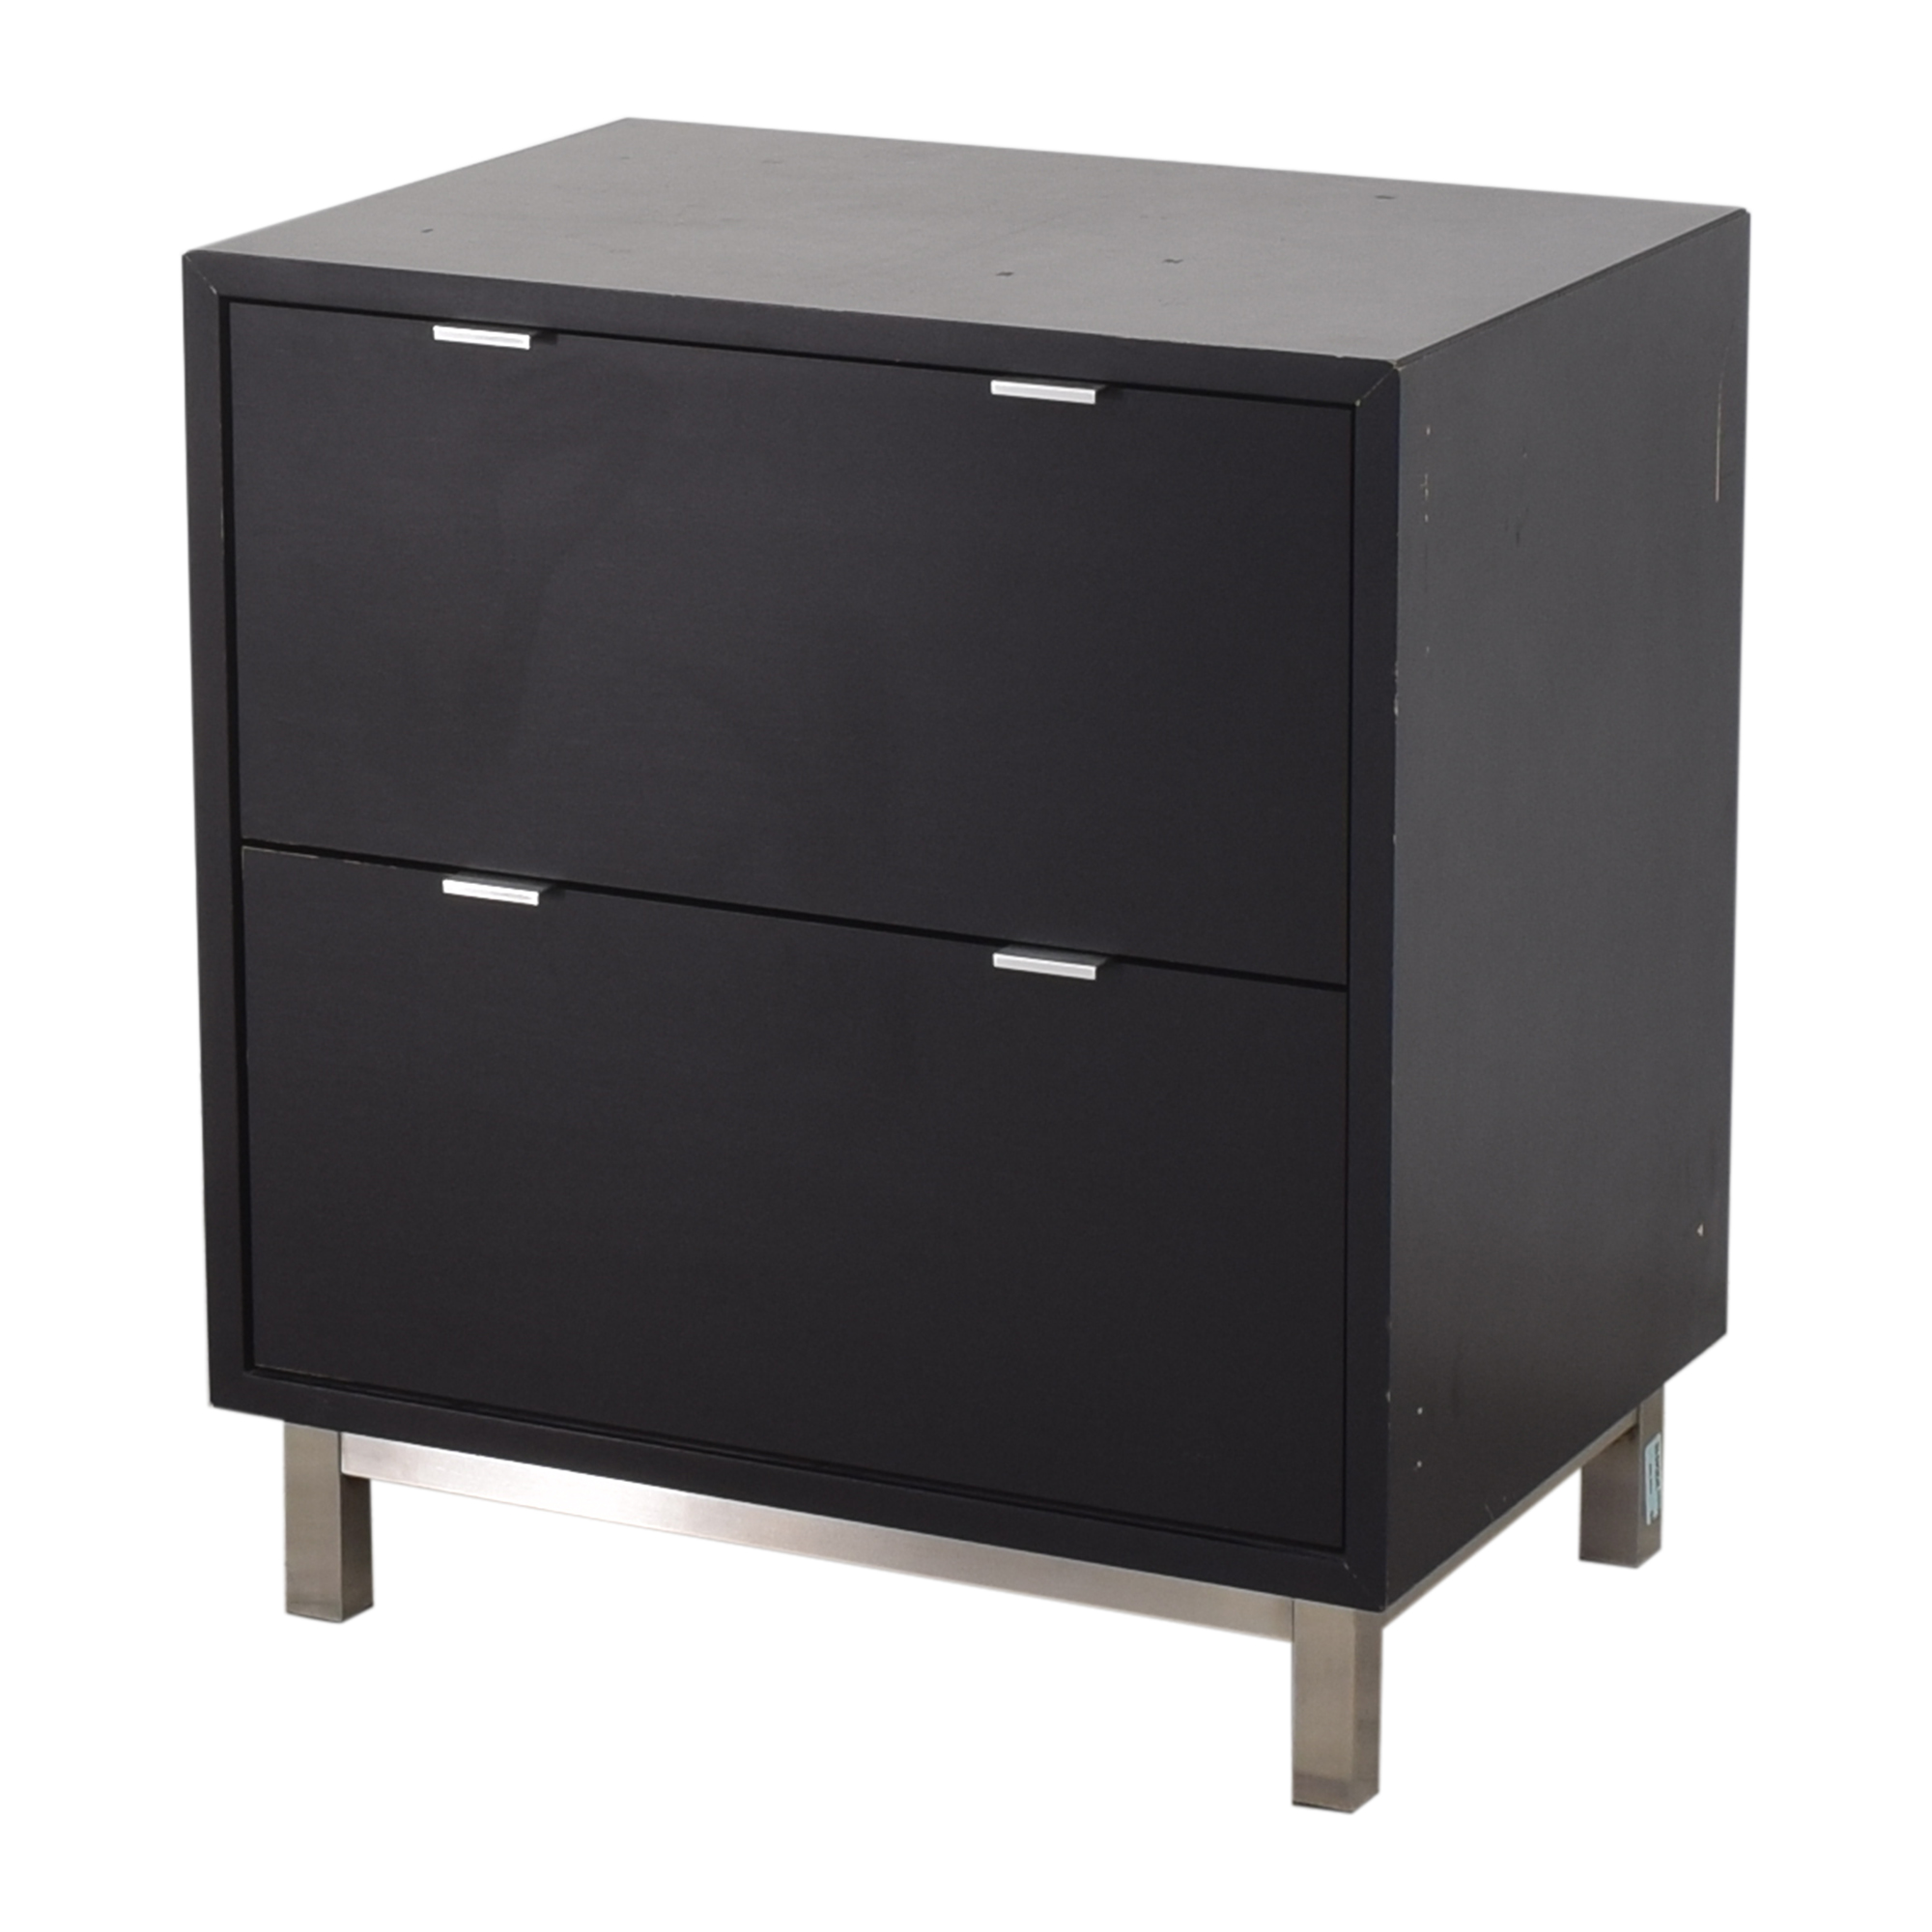 shop Room & Board Copenhagen Lateral File Cabinet Room & Board